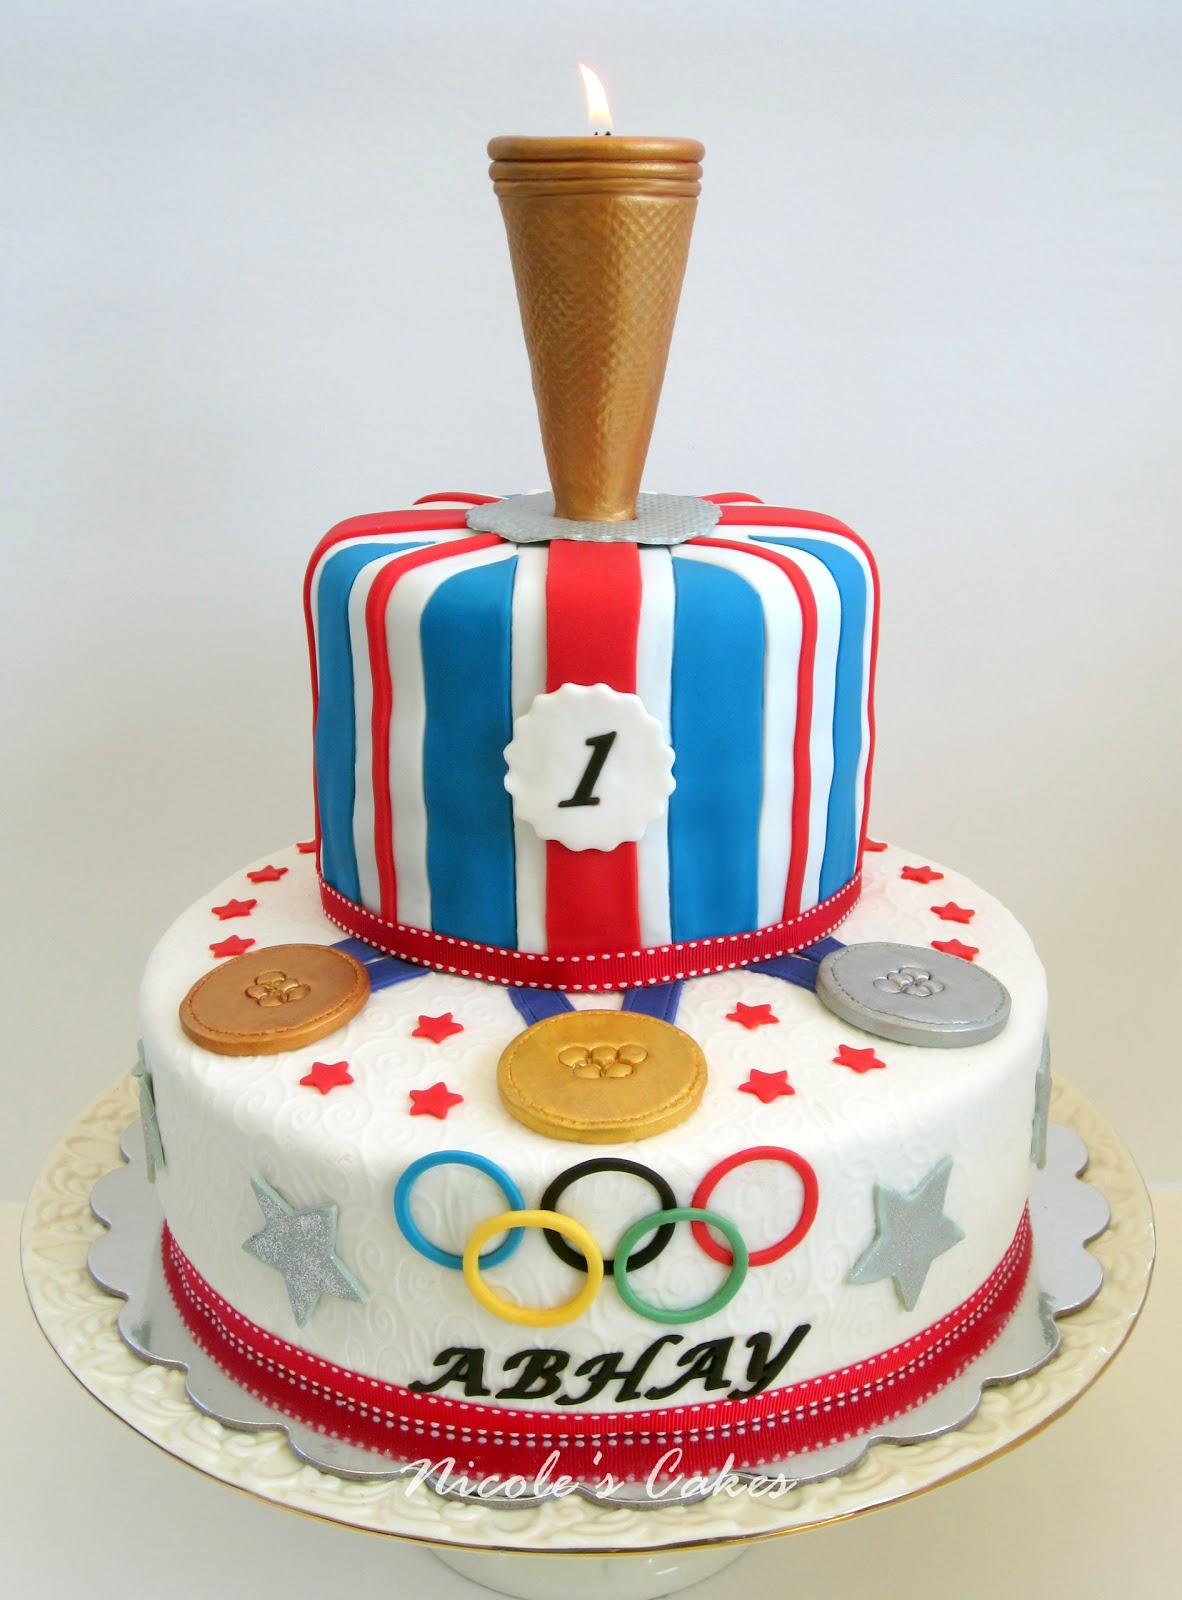 Confections Cakes Amp Creations The 2012 London Olympics